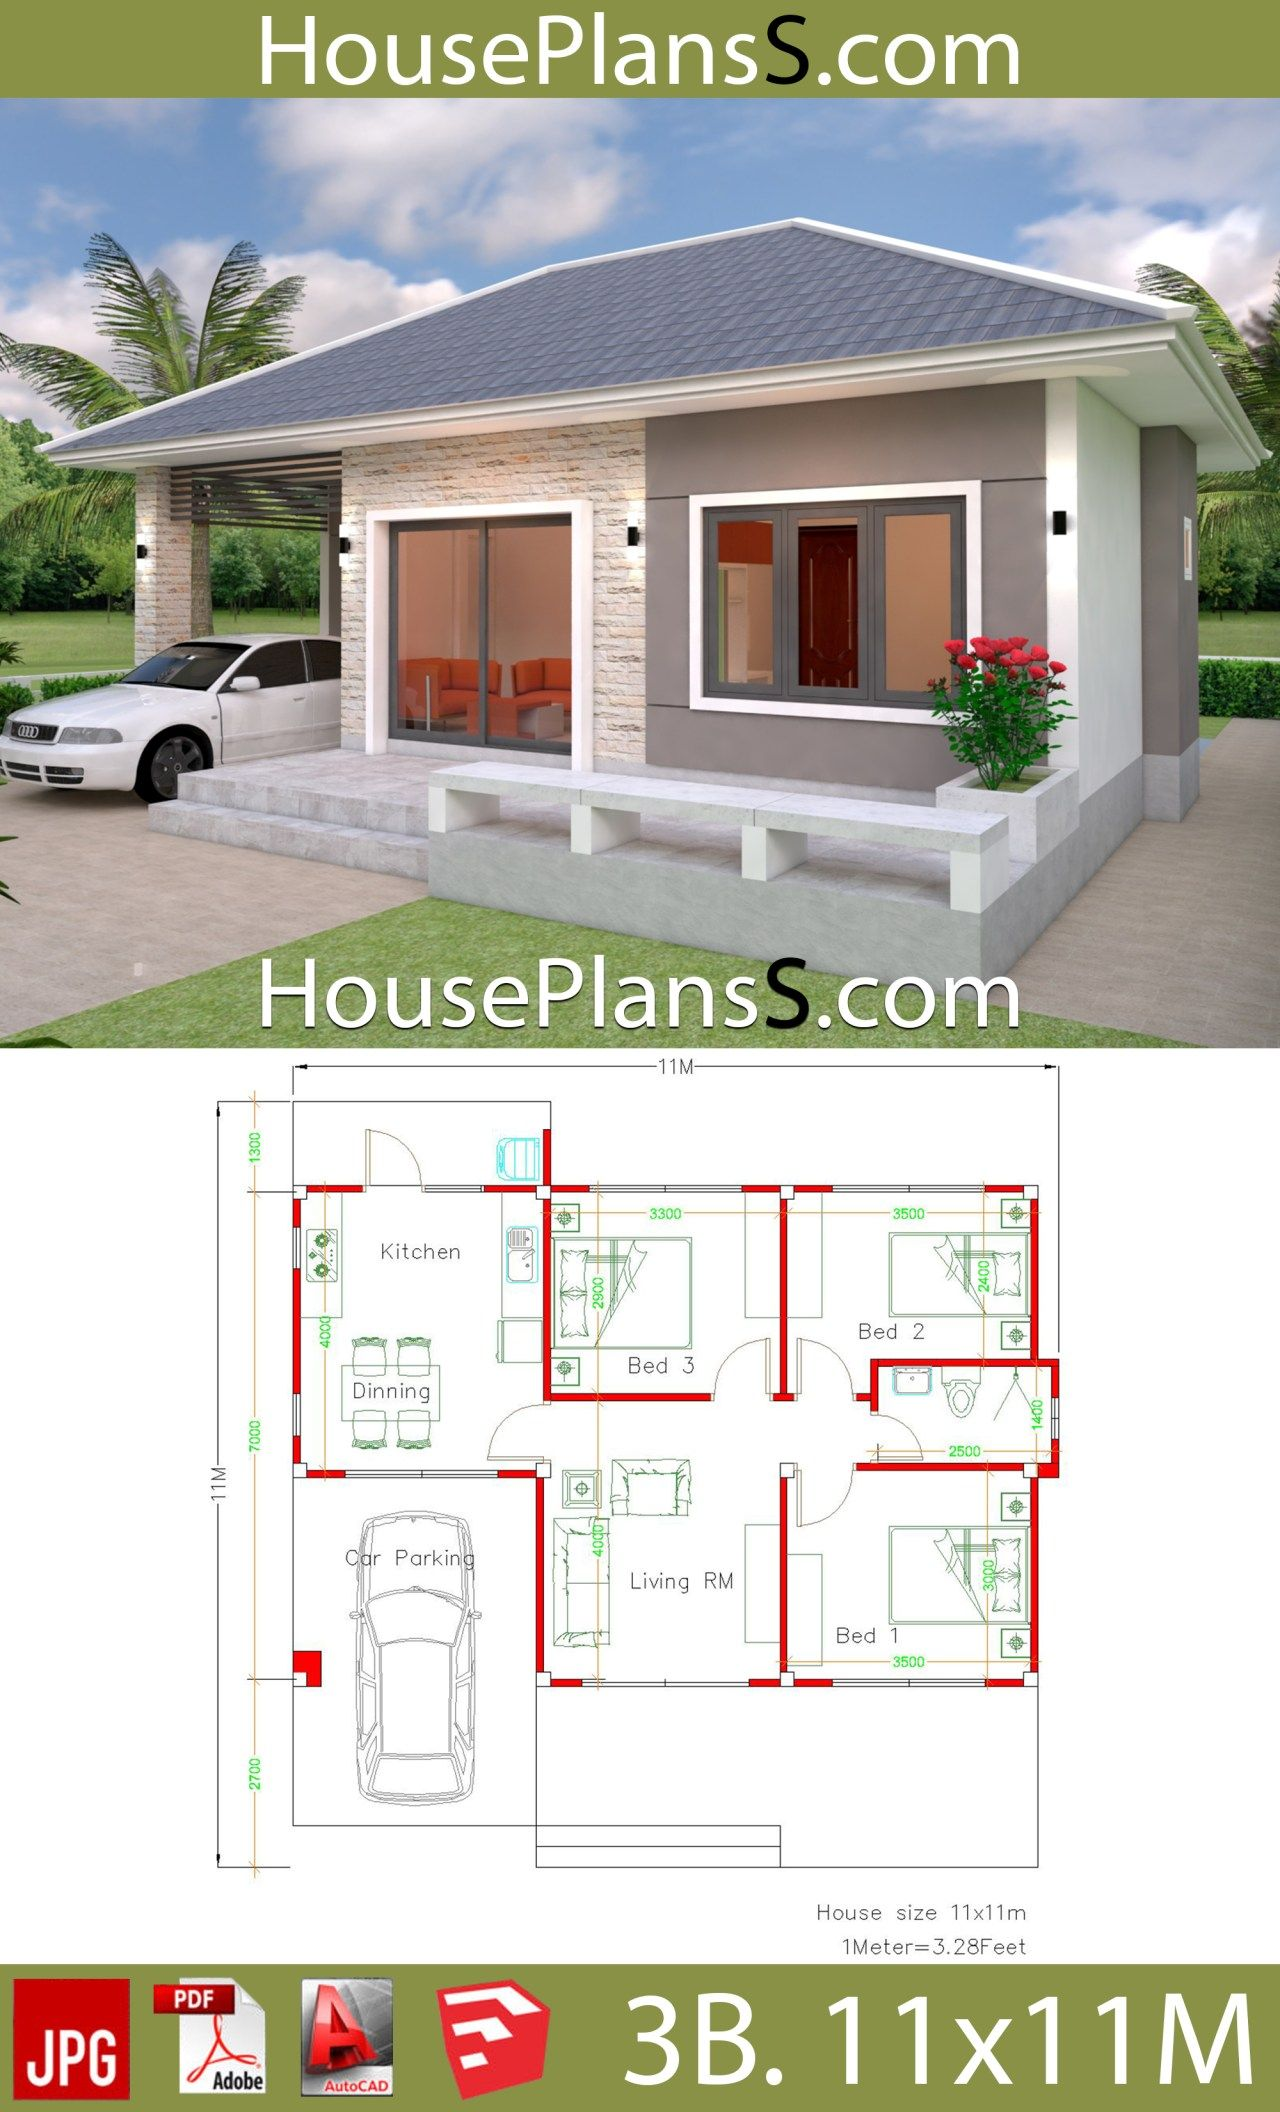 Simple House Design Plans 11x11 With 3 Bedrooms Full Plans Em 2020 Projetos De Casas Simples Projetos De Casas Populares Planta Baixa Residencial